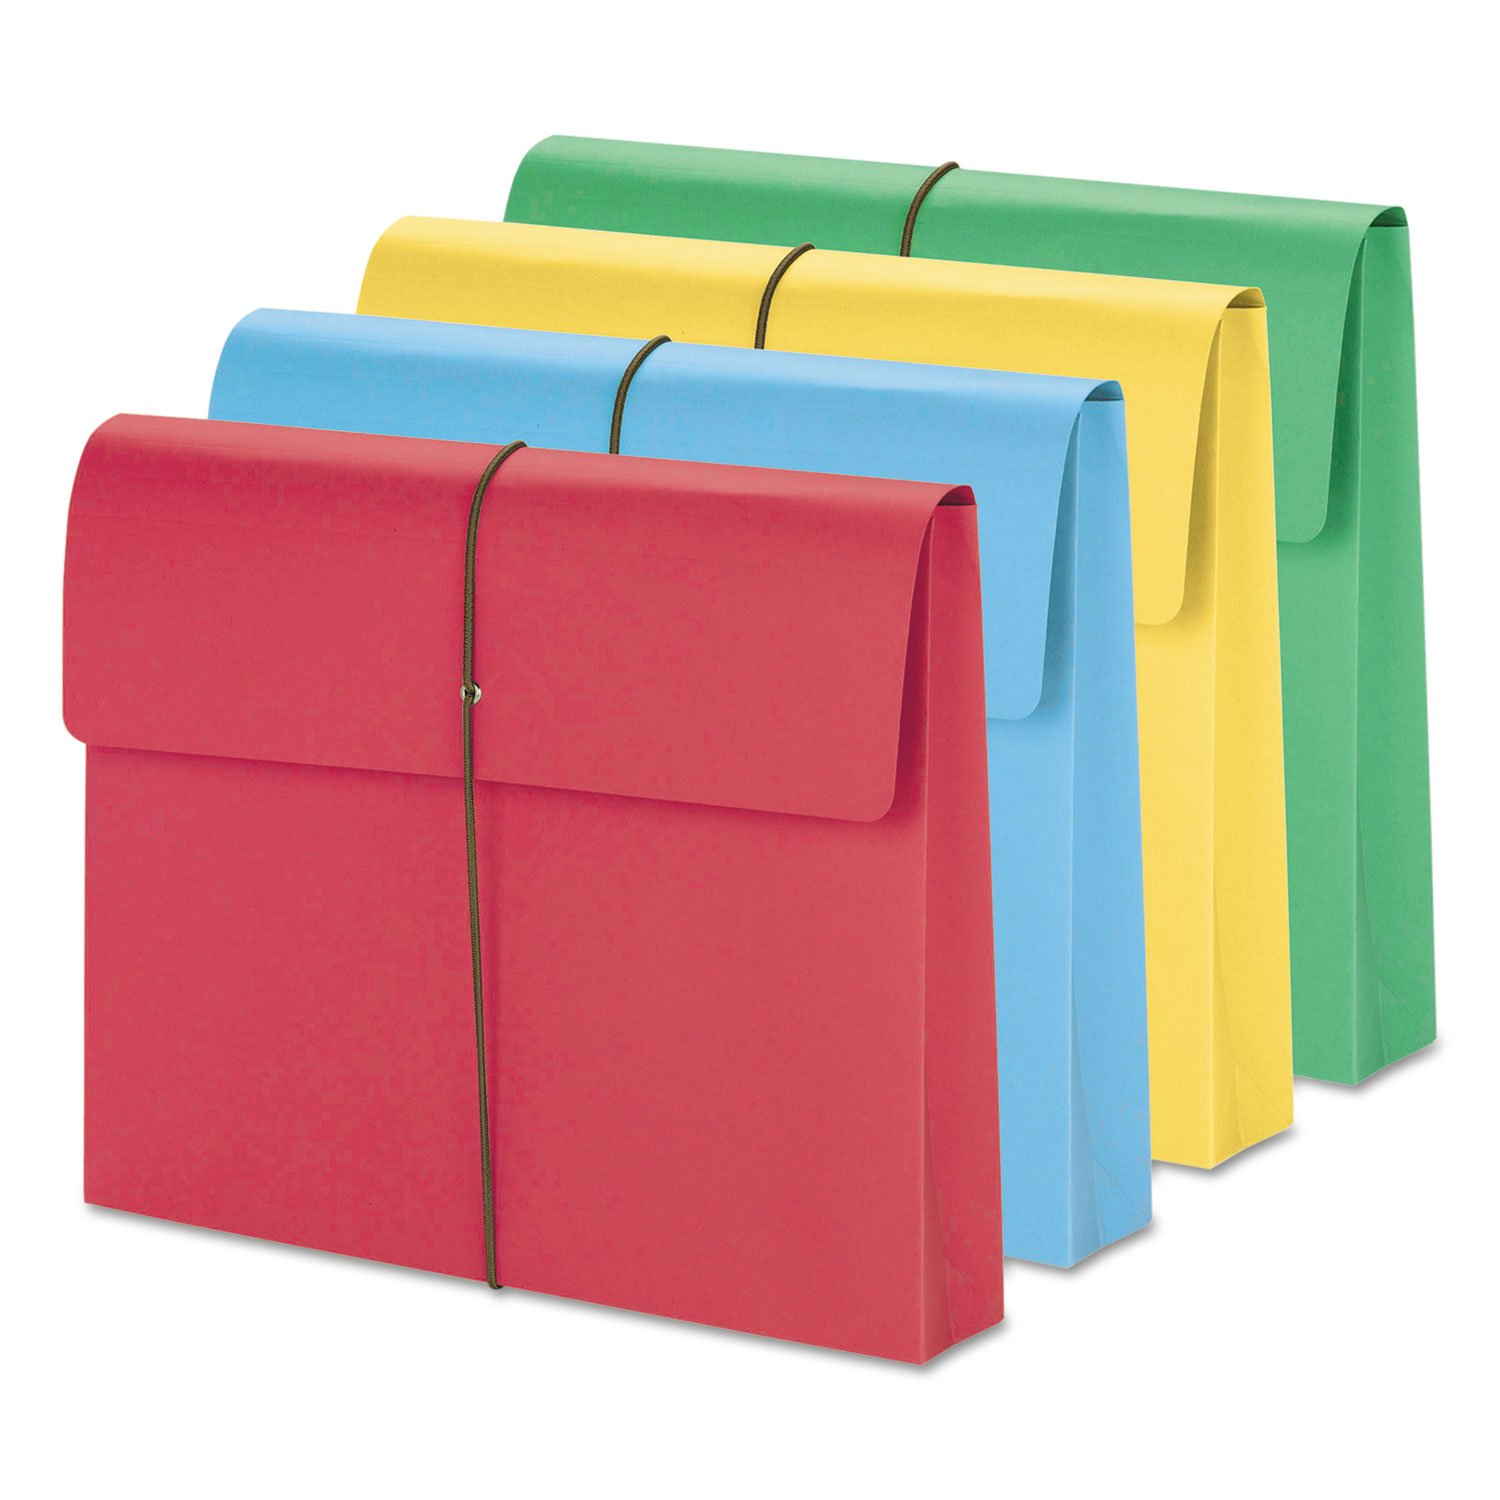 Durable construction with protective flap and sturdy elastic closure to secure your materials and keep contents safe. Perfect for use in law firms, mortgage companies or home offices. Keeps projects and notes together in one aesy place.